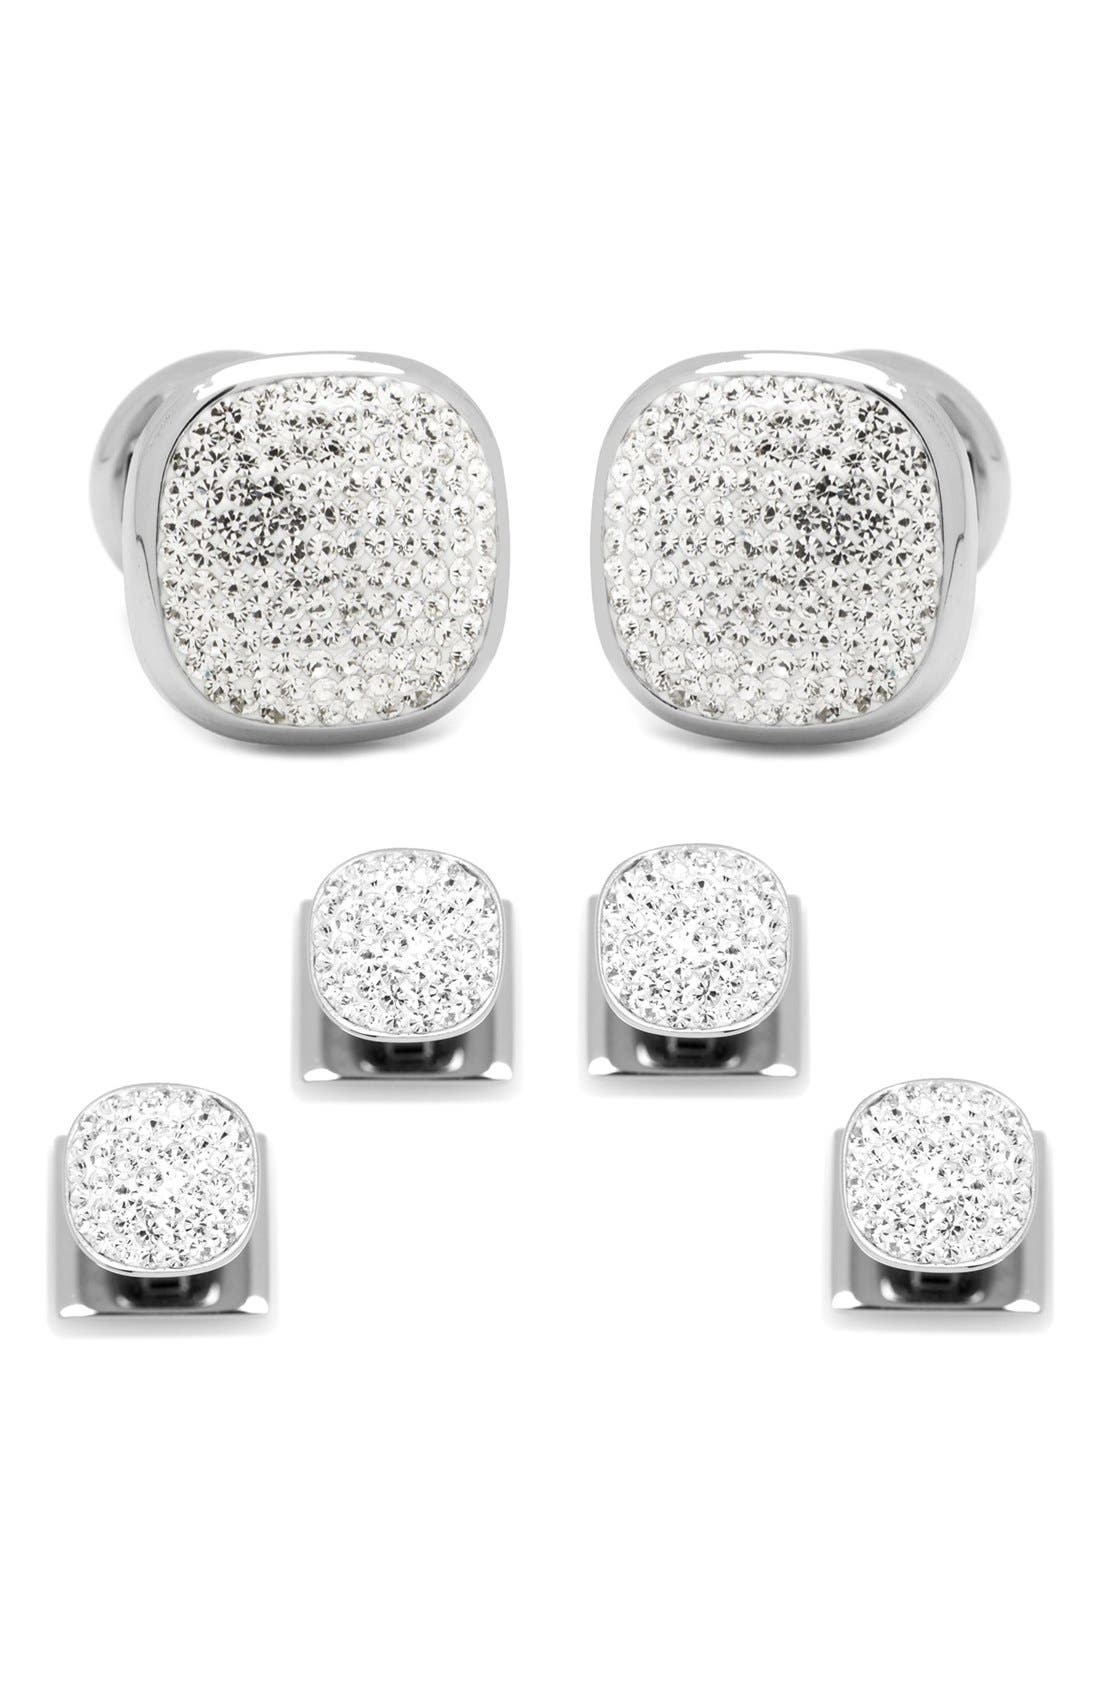 Cufflinks, Inc. White Pave Crystal Shirt Studs & Cuff Links